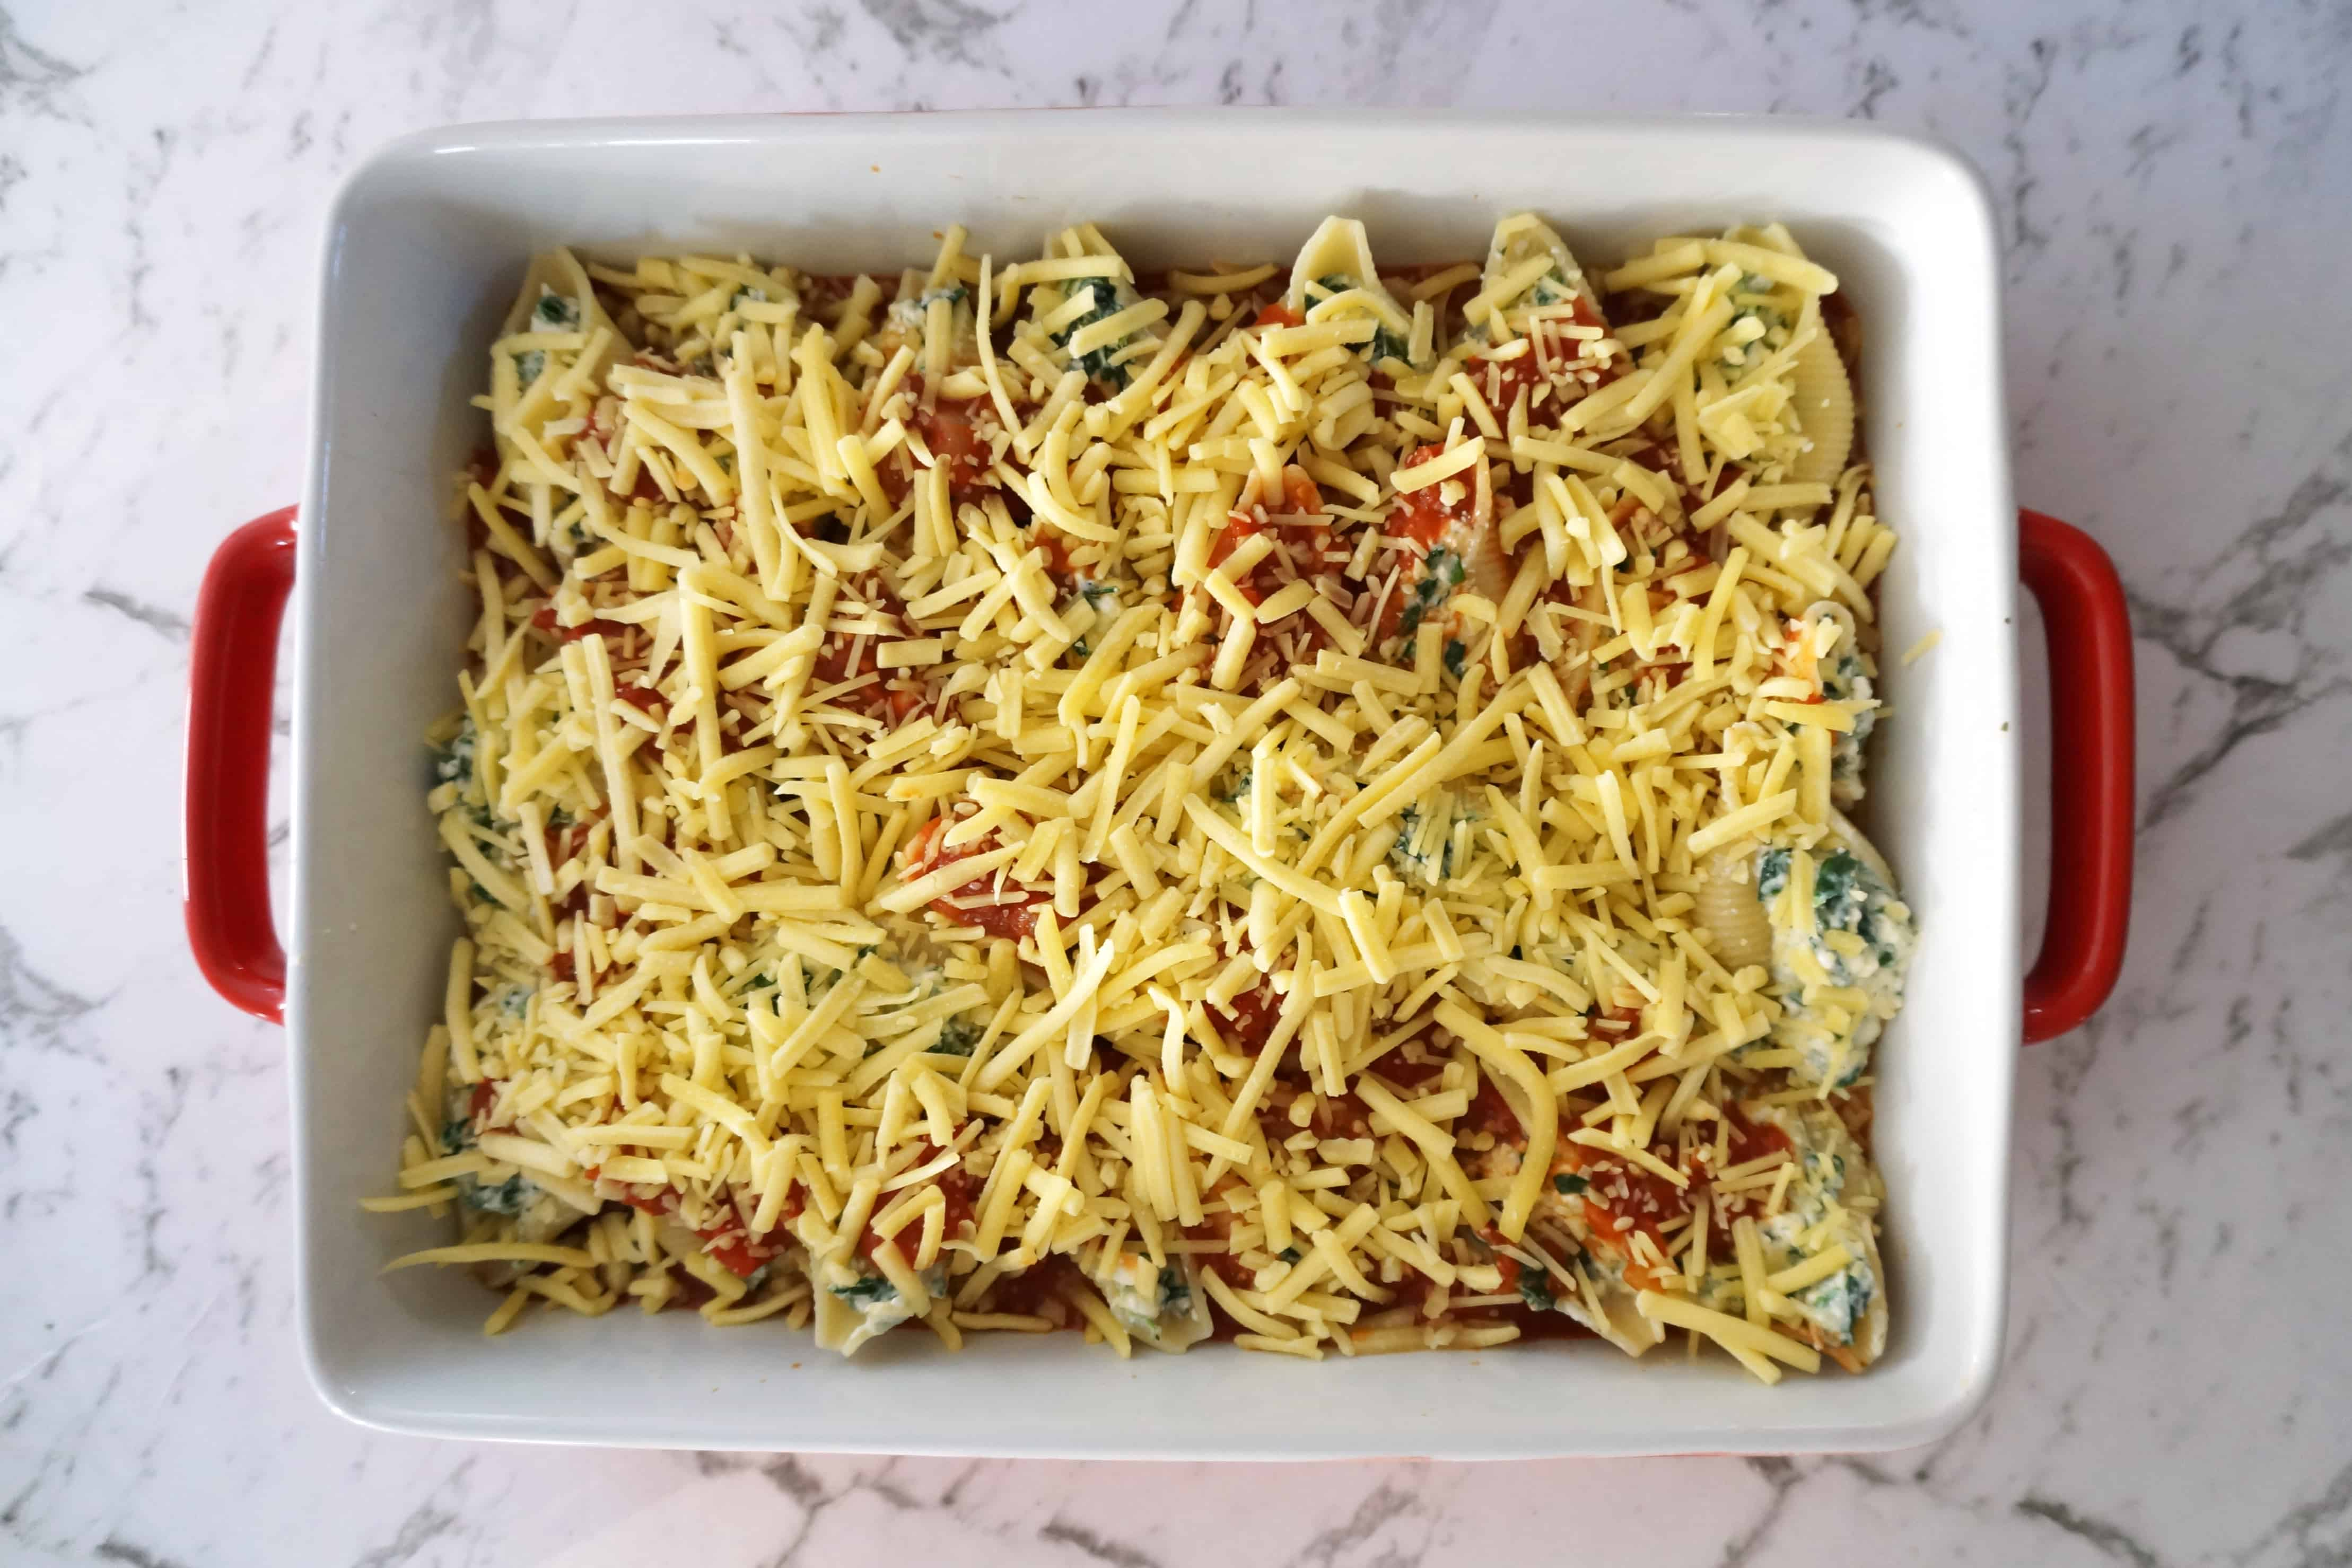 Unbaked spinach and cheese stuffed conchiglioni pasta bake in a red baking dish